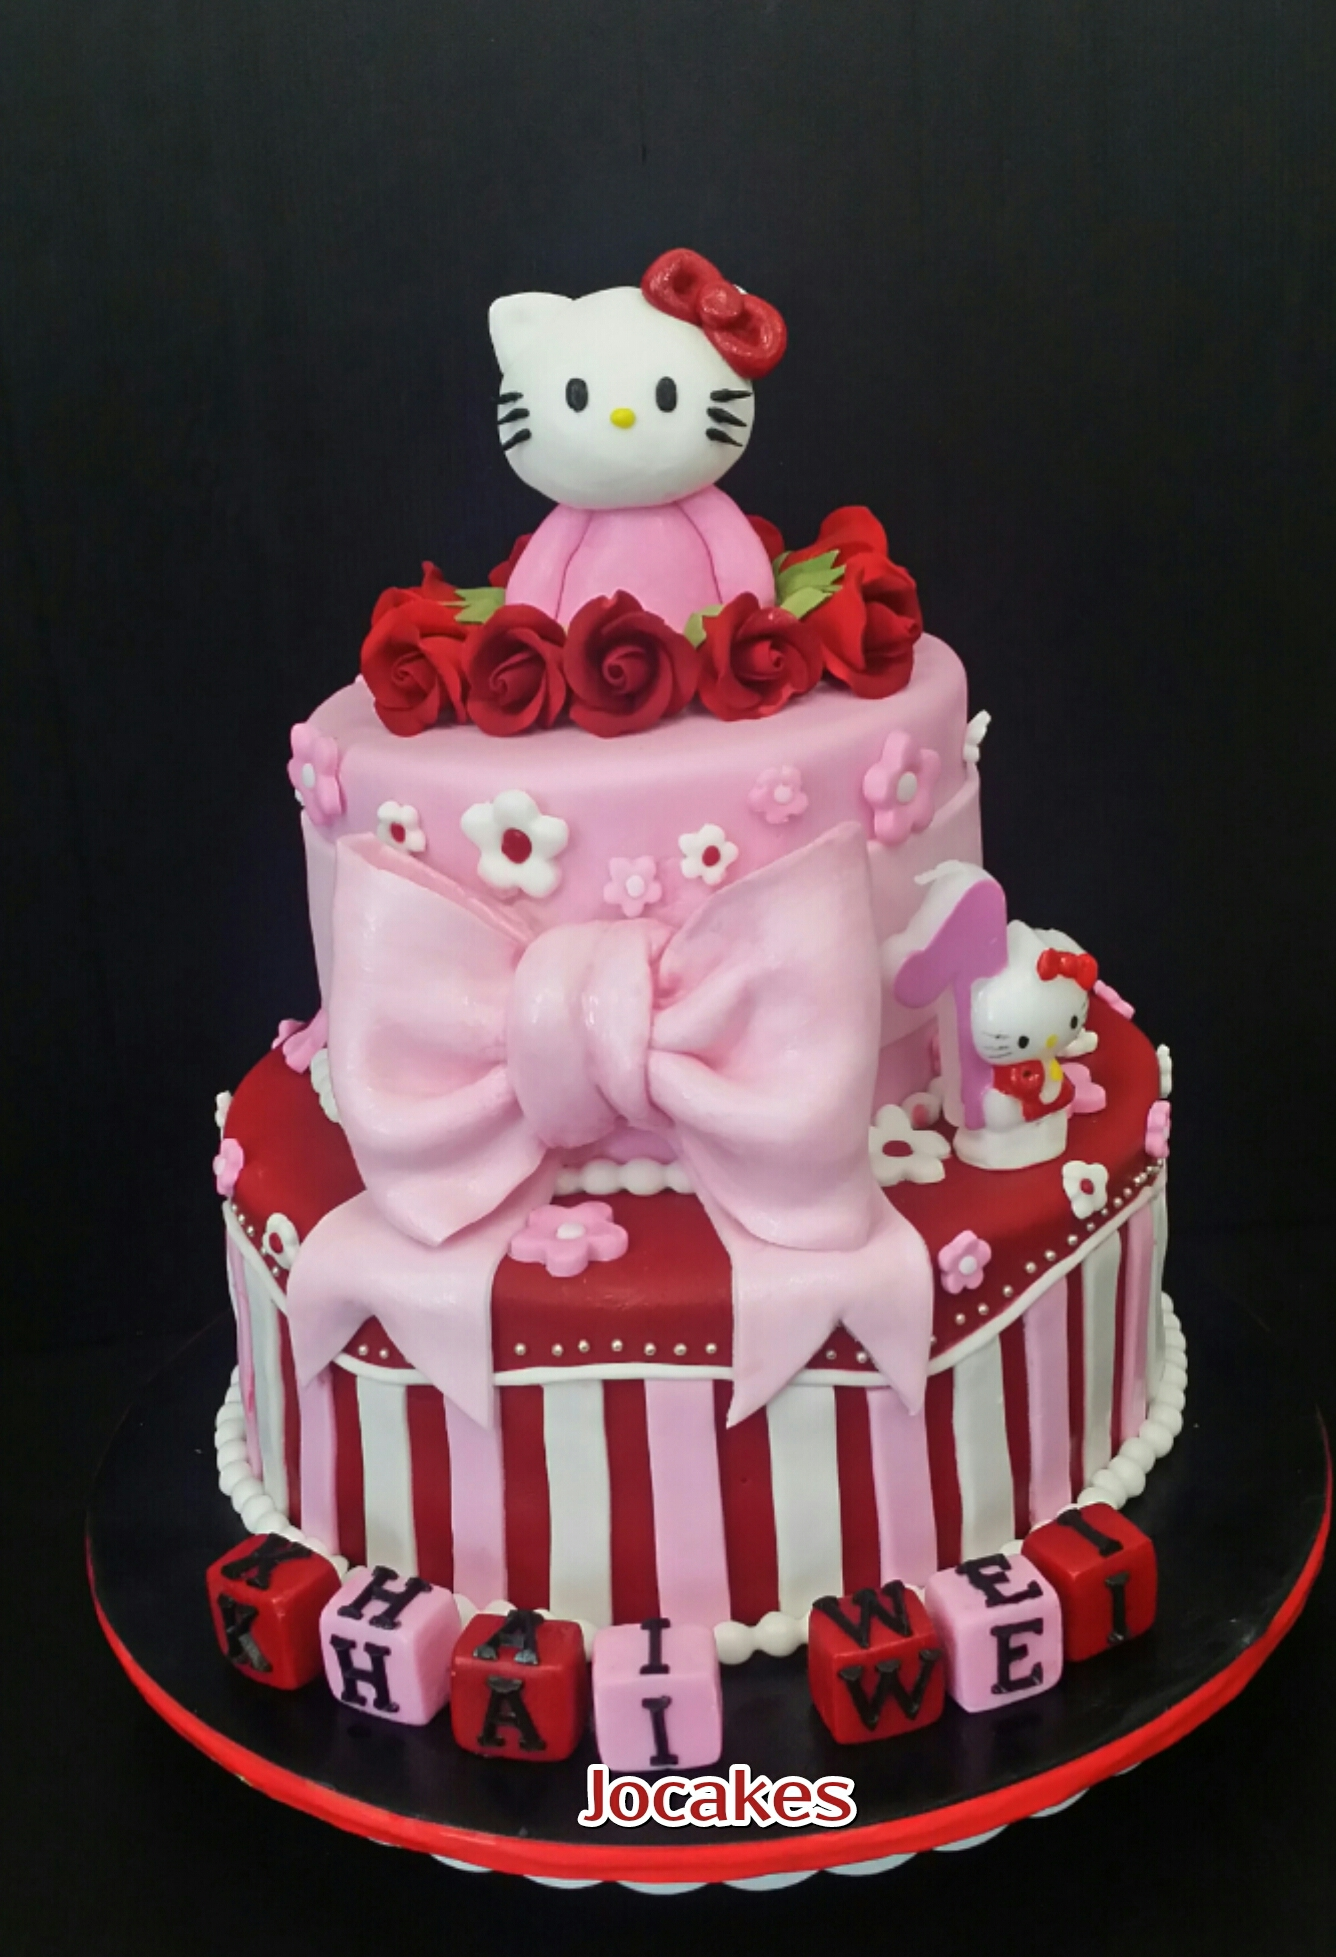 Hello Kitty Cake For Khai Weis 1st Birthday Jocakes